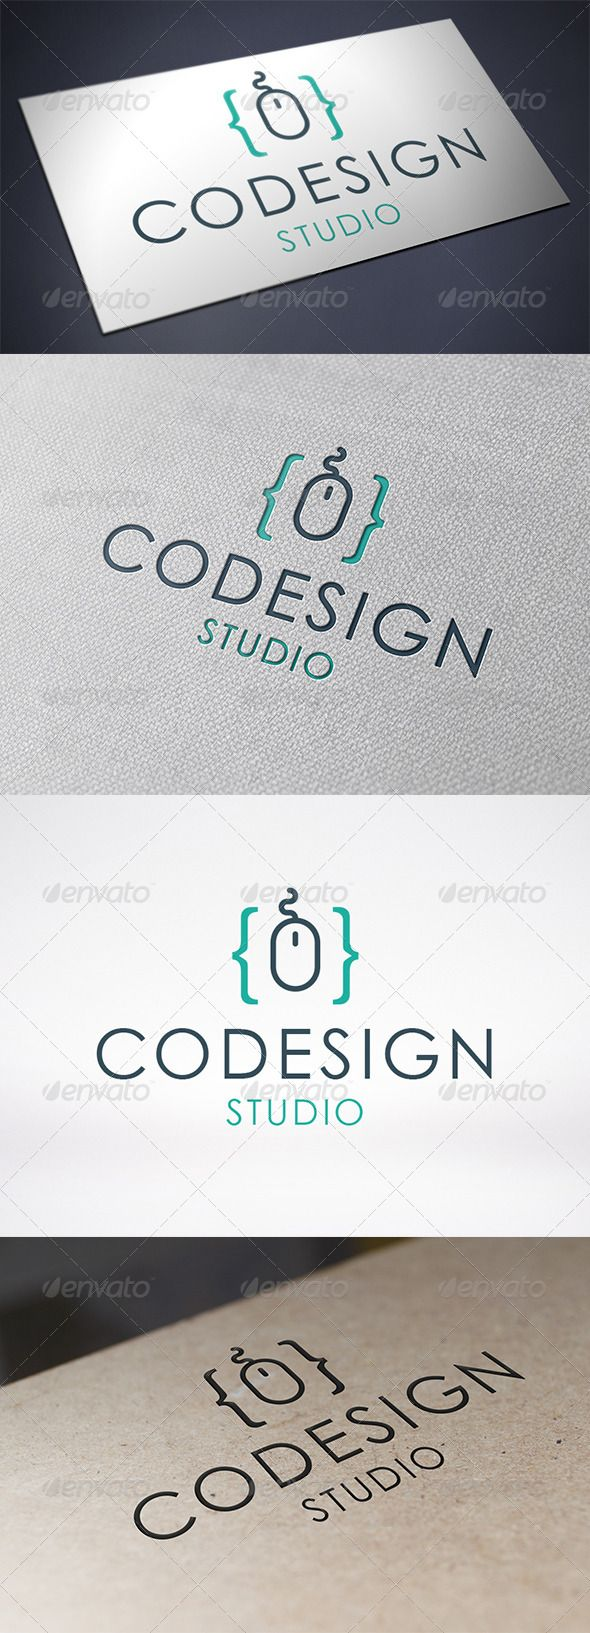 Code Design Logo Template  #GraphicRiver         - Three color version: color, greyscale and single color.   -